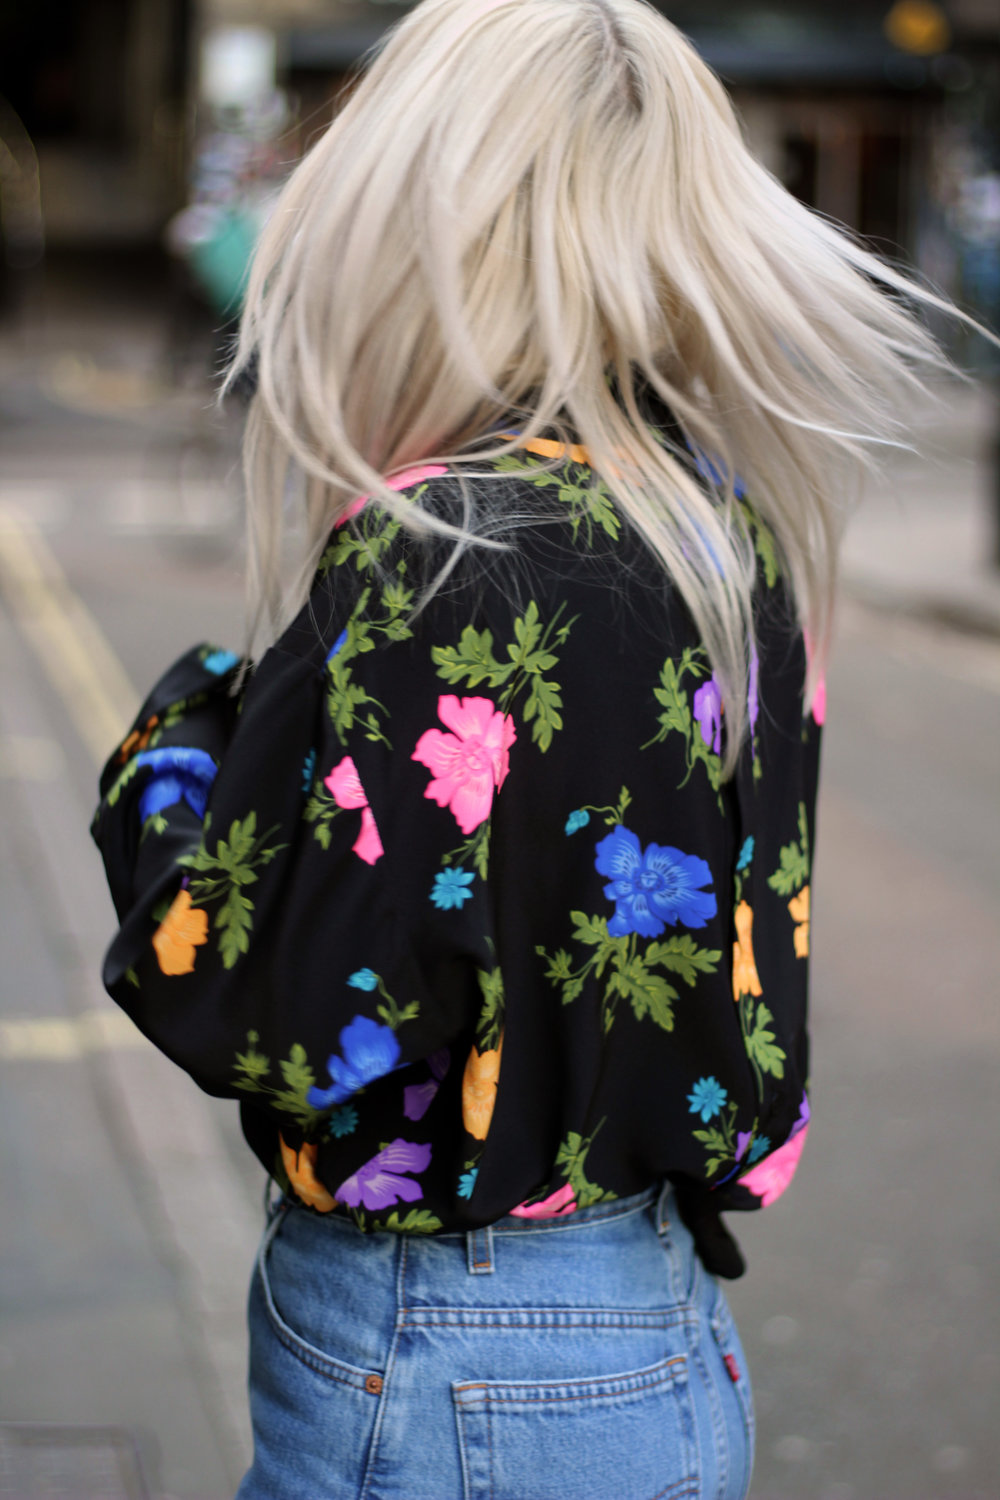 Topshop boutique silk blouse, blogging with a full time job, northern magpie, joey taylor 4